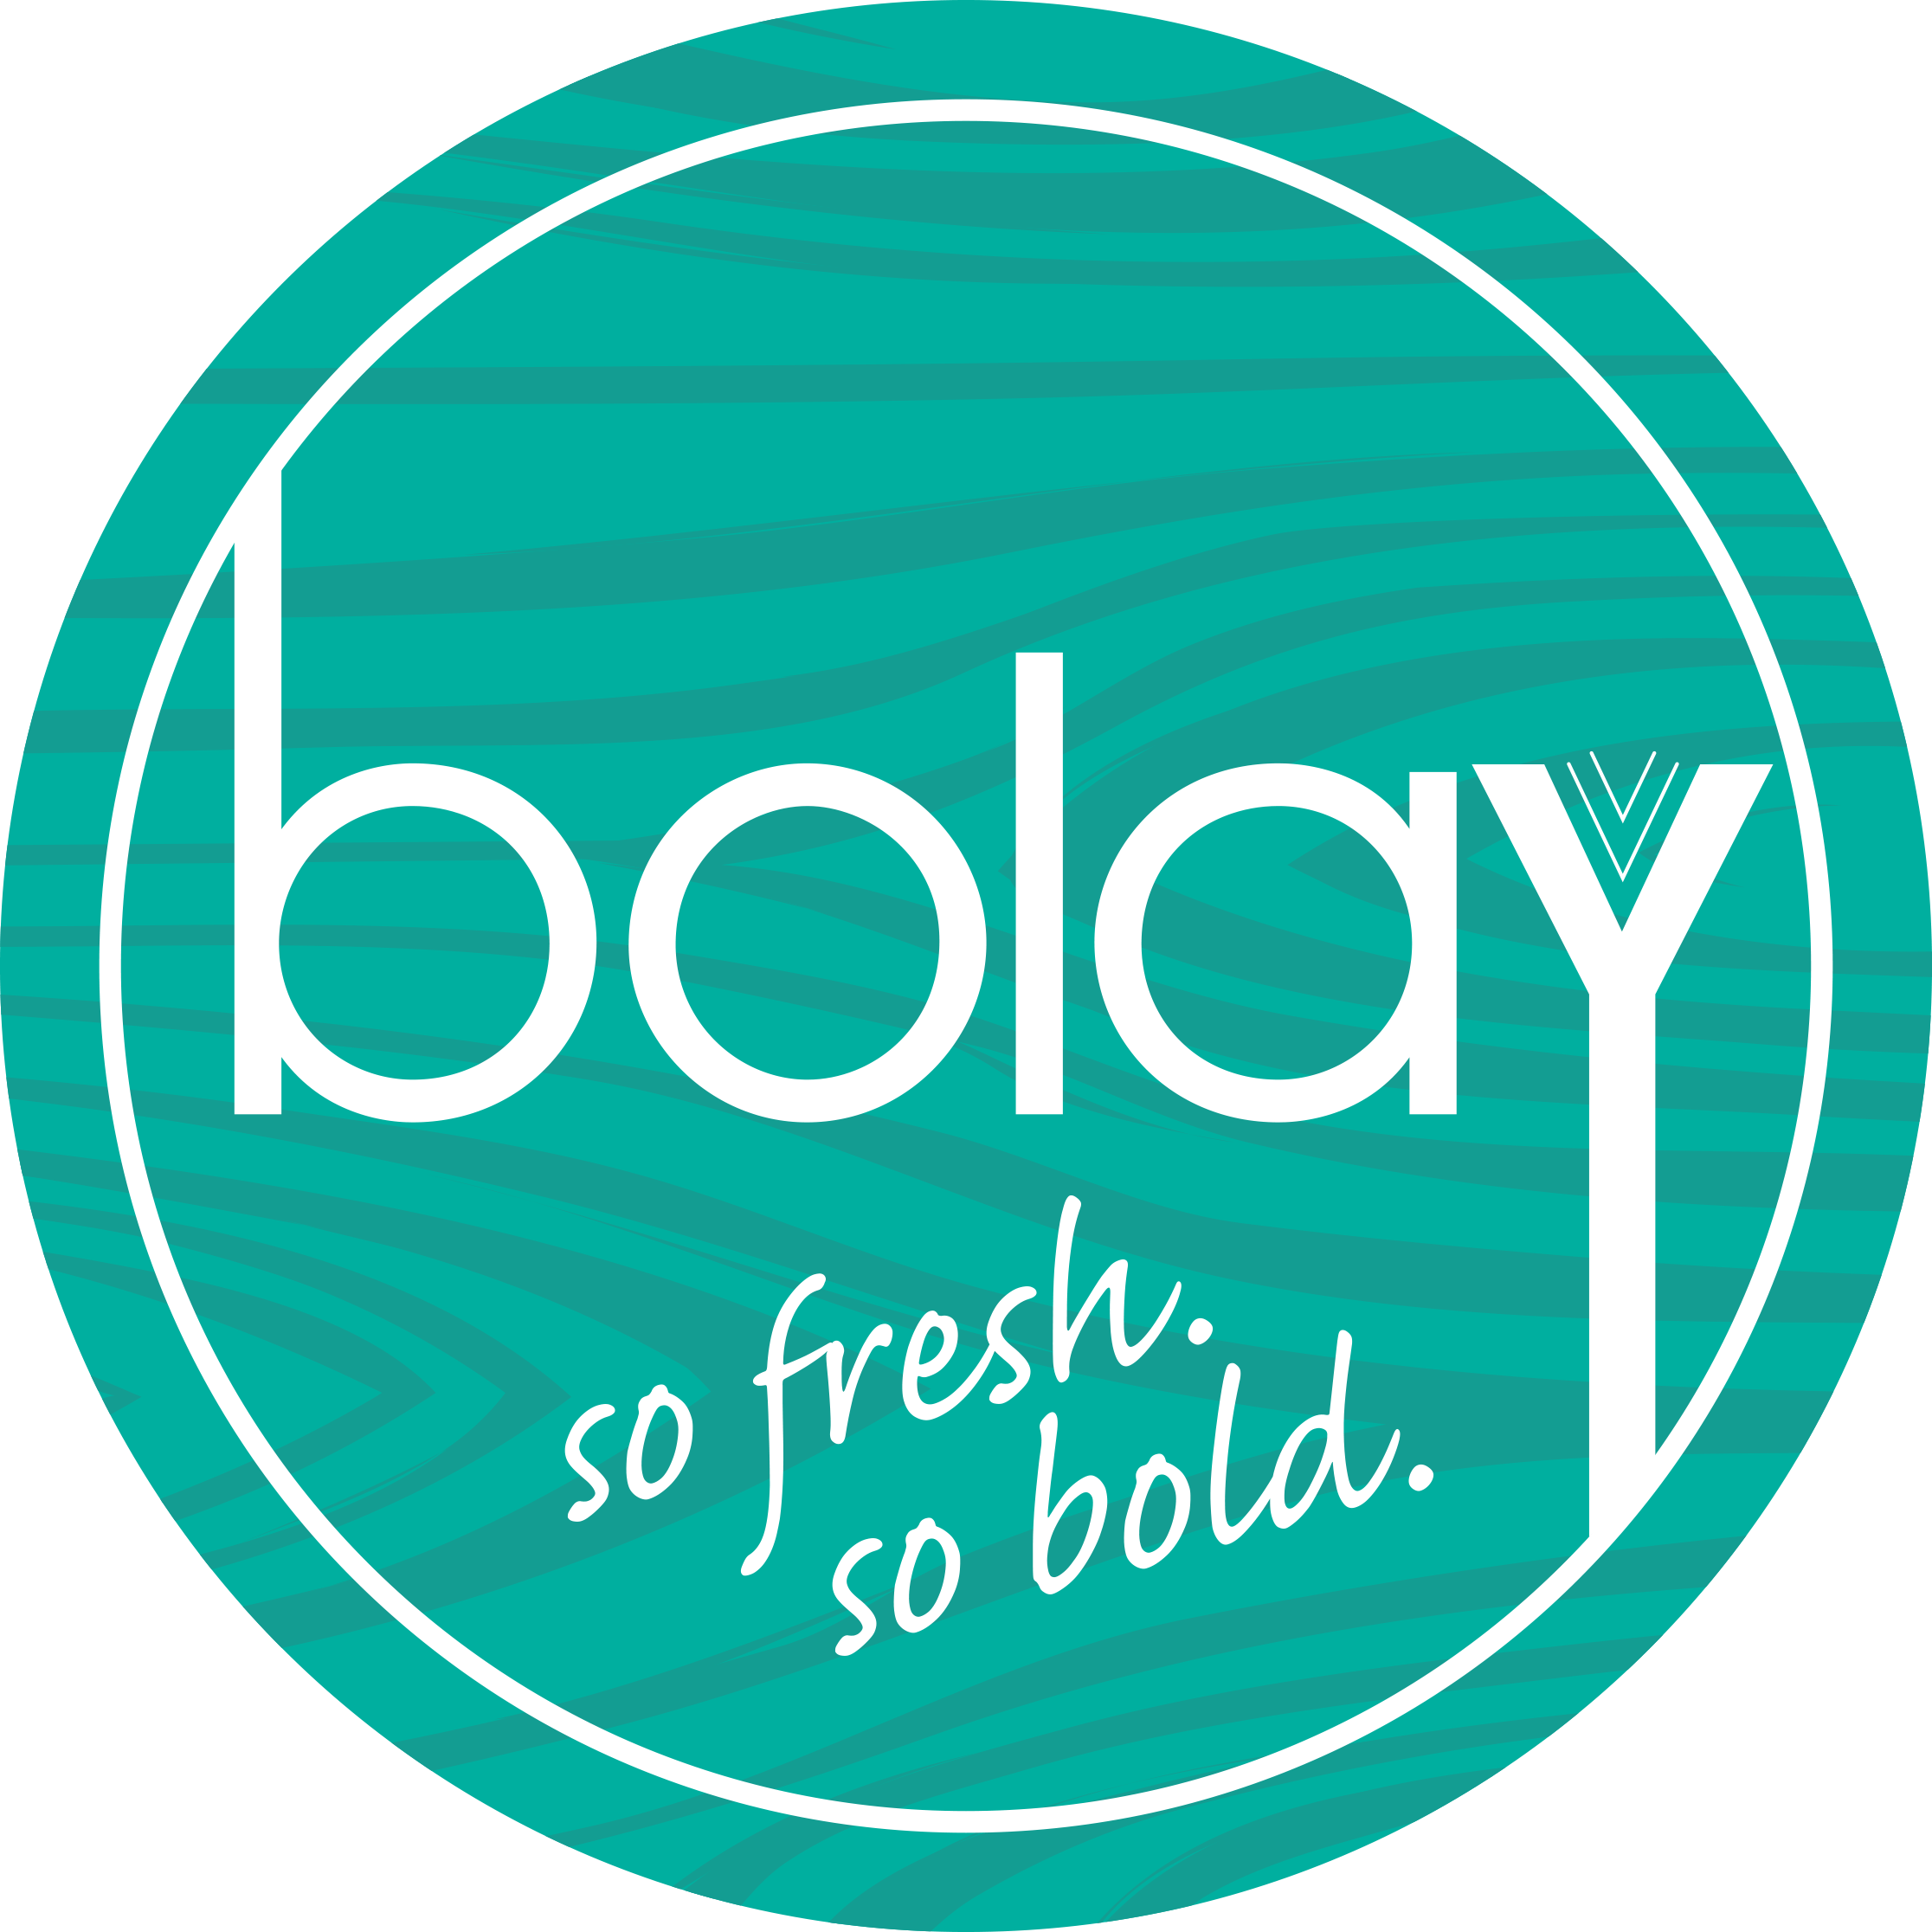 Bolay Menu | Boca Raton, Fl Food Delivery | Healthy, Bowls ...